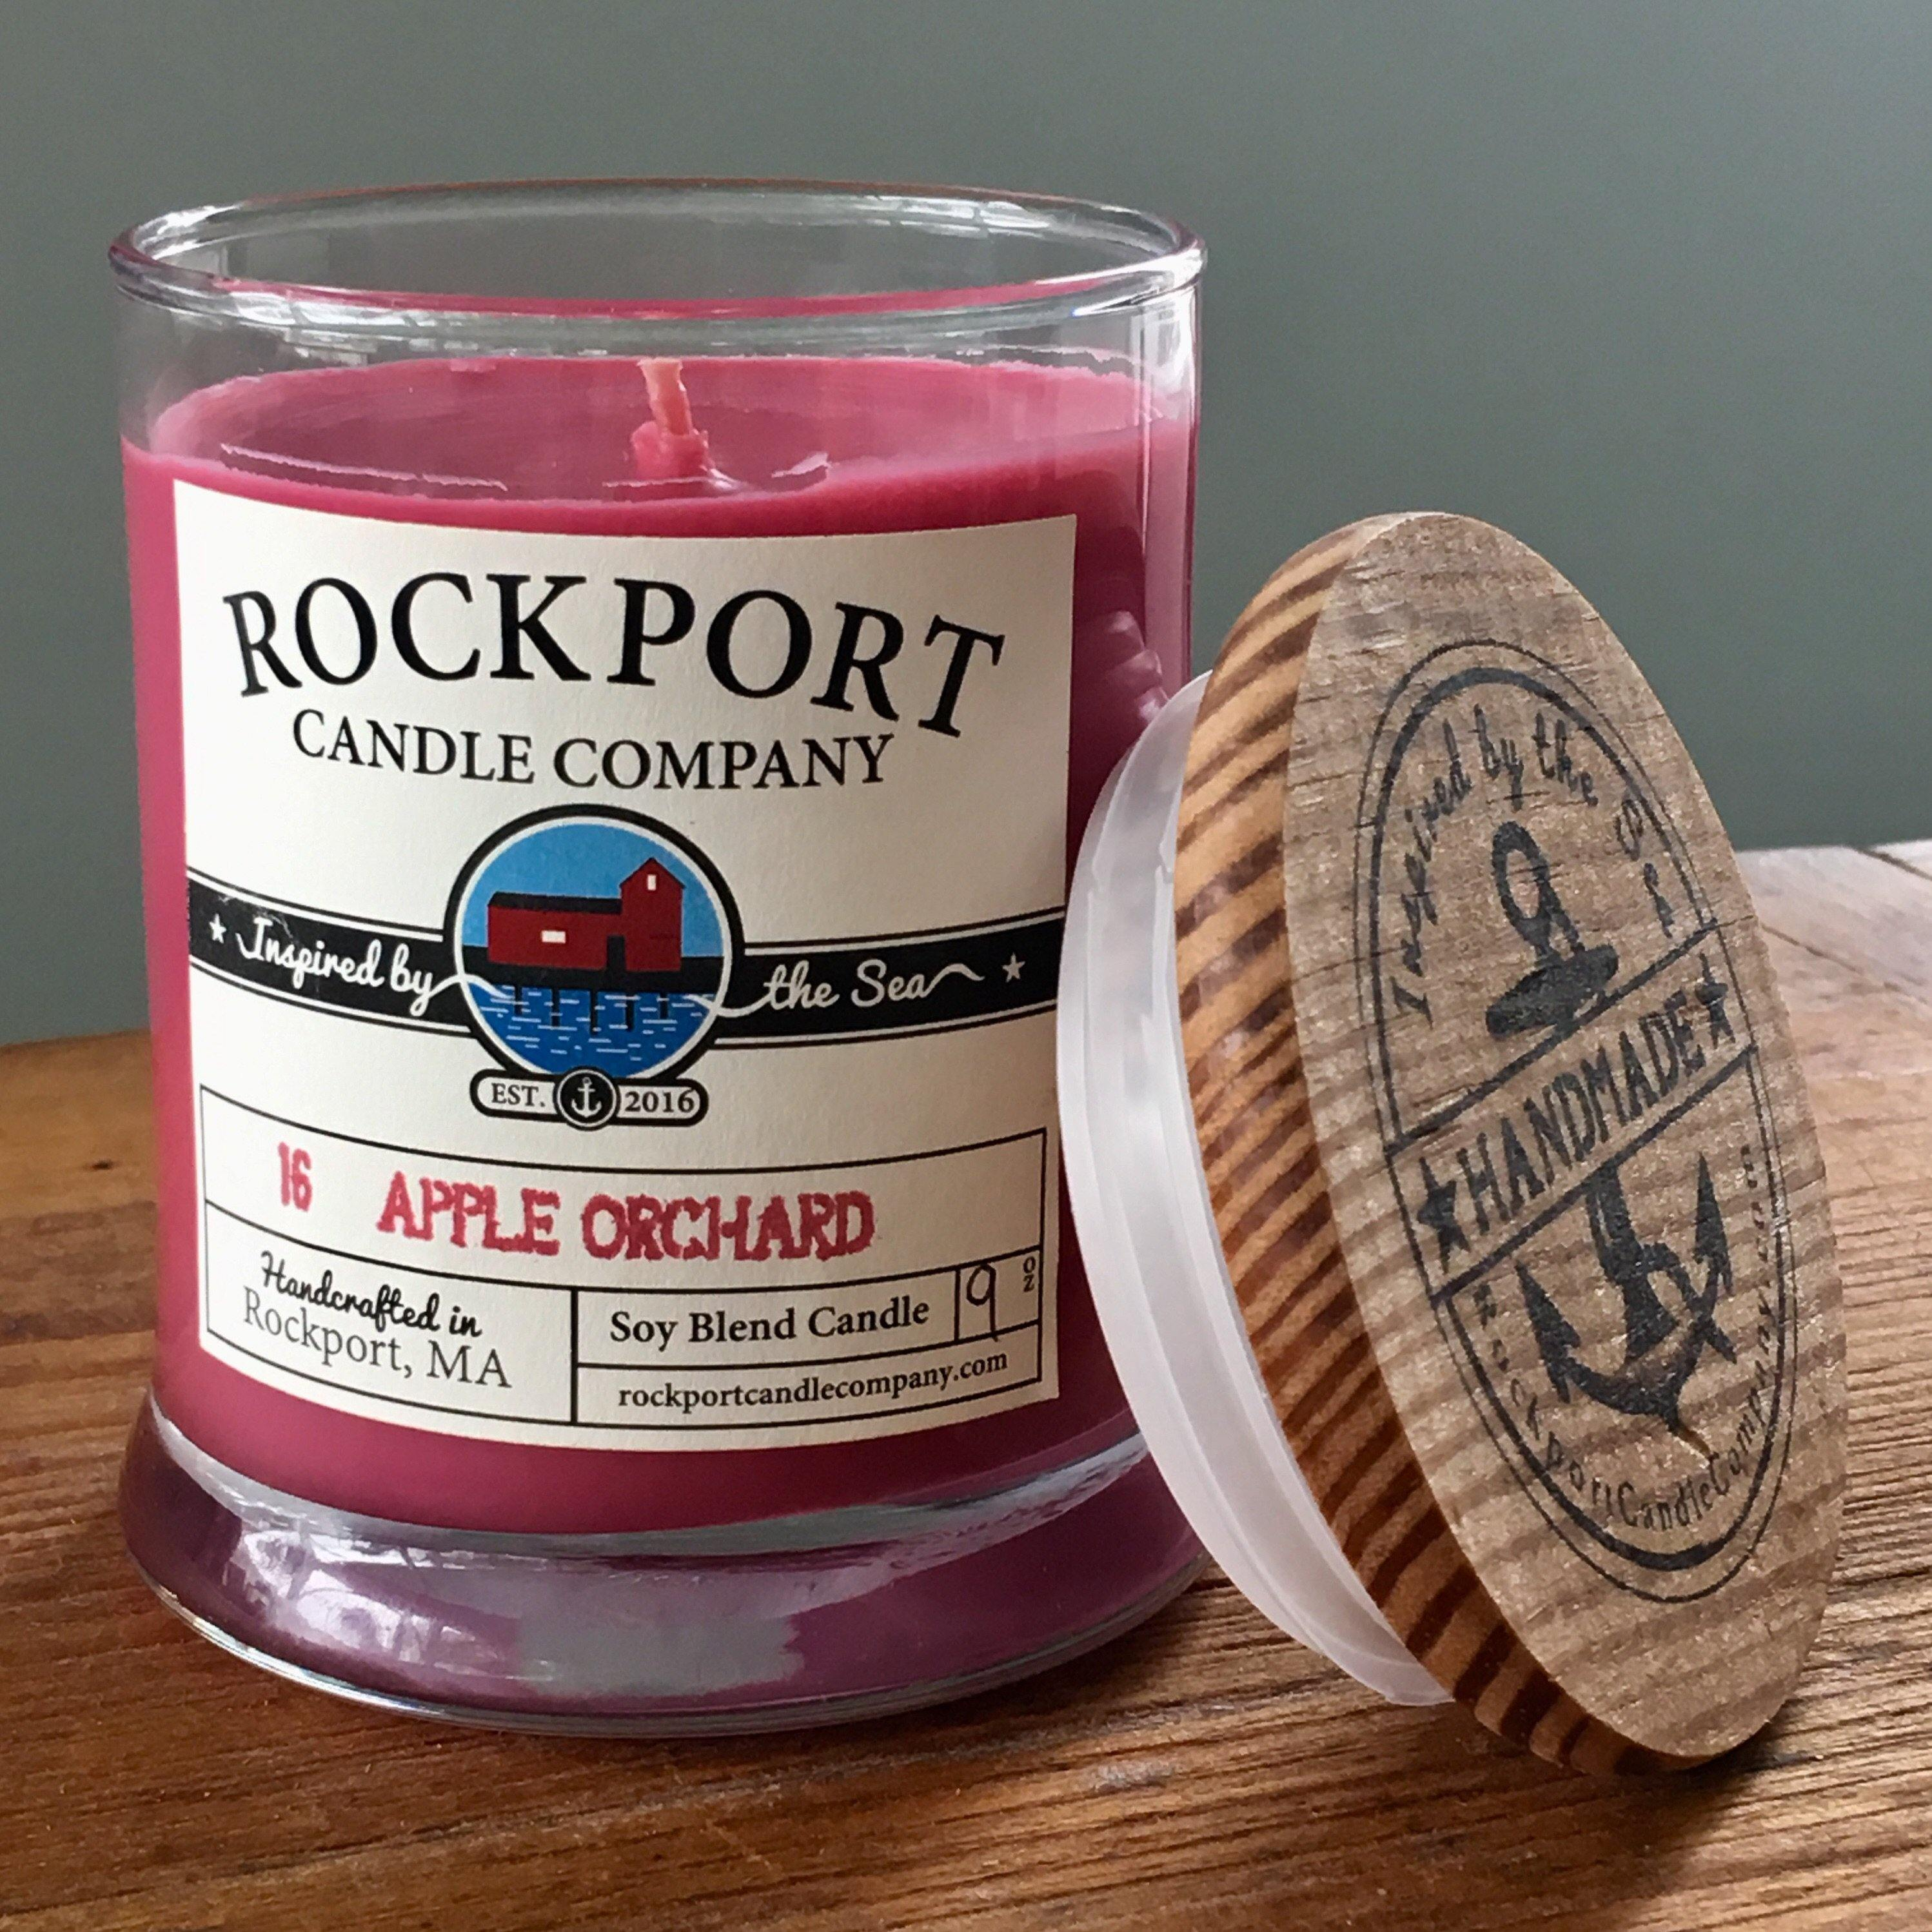 16 Apple Orchard - Rockport Candle Company